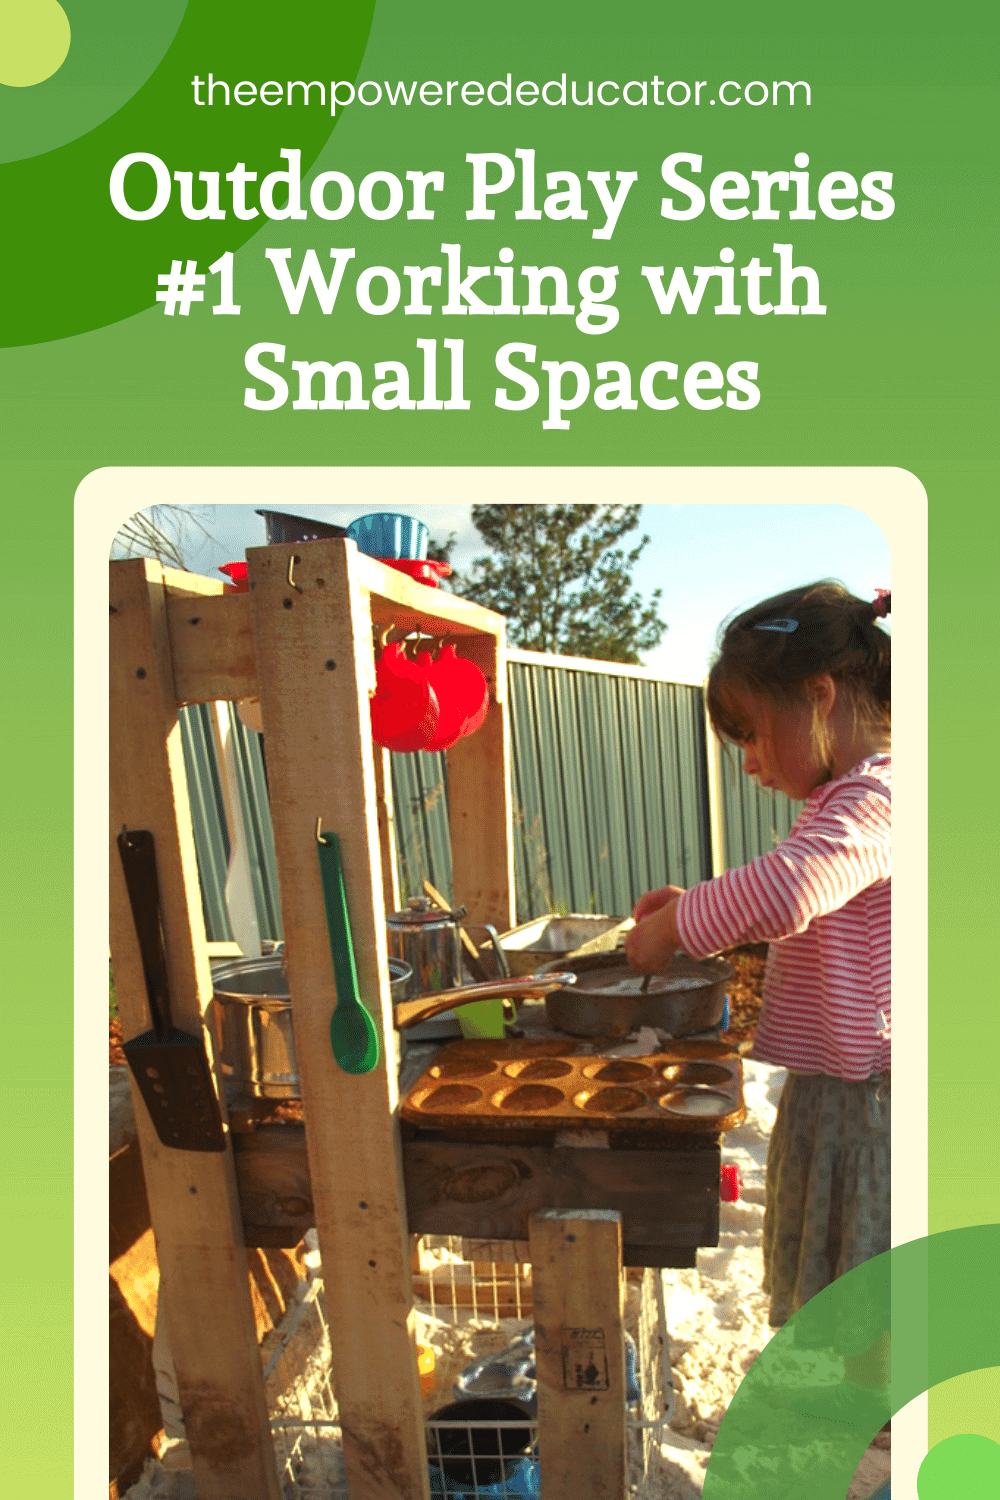 Outdoor Play Series #1 Working with Small Spaces